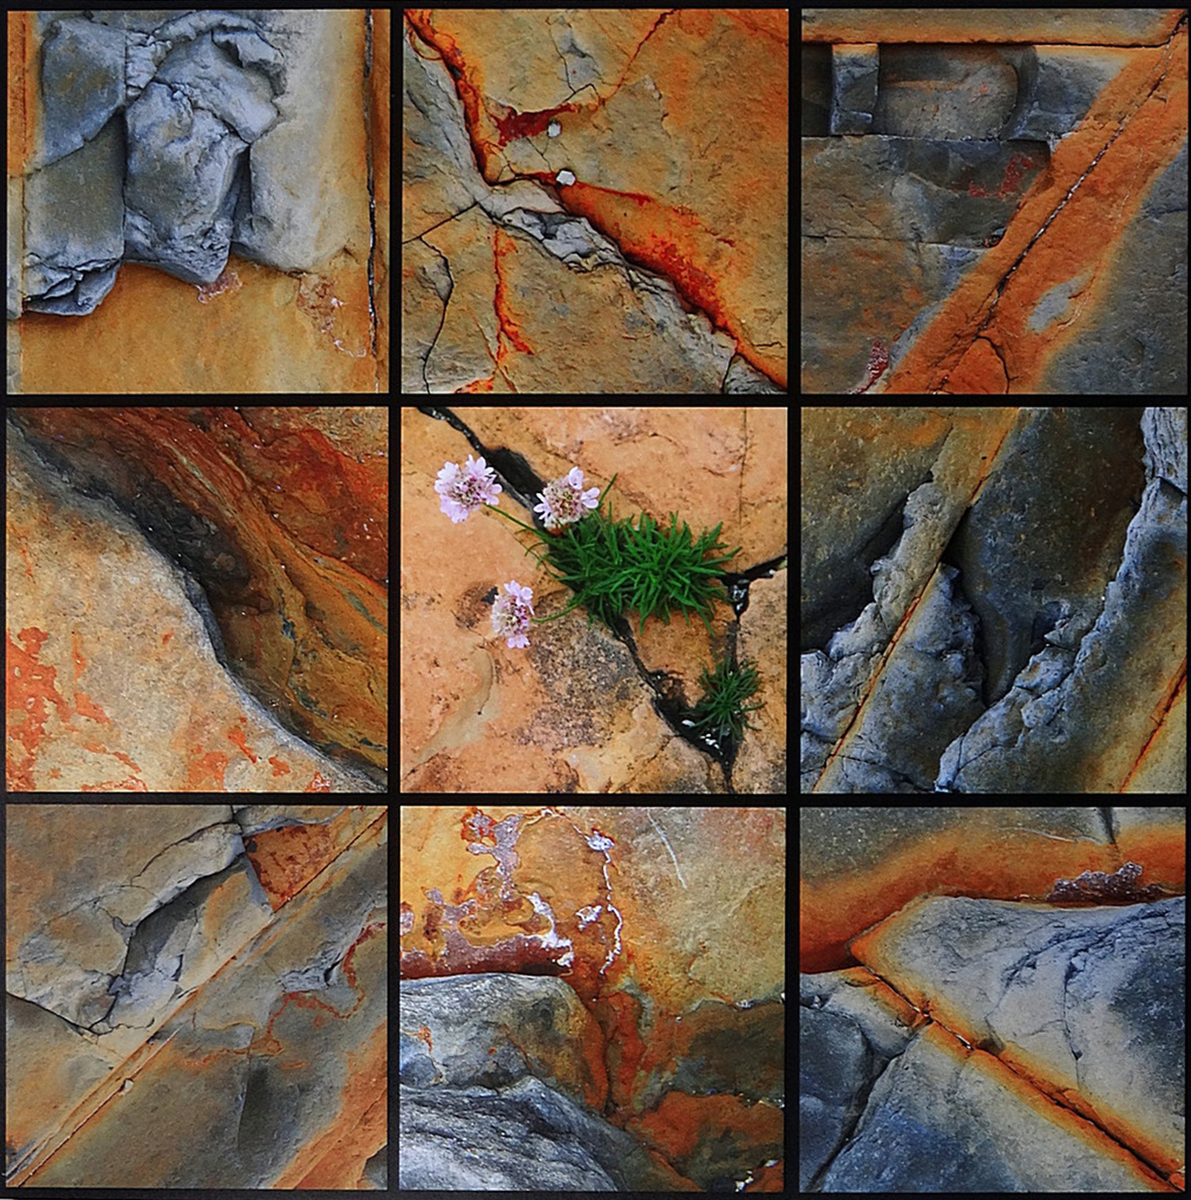 'Rock Mosaic' by Sheila Read